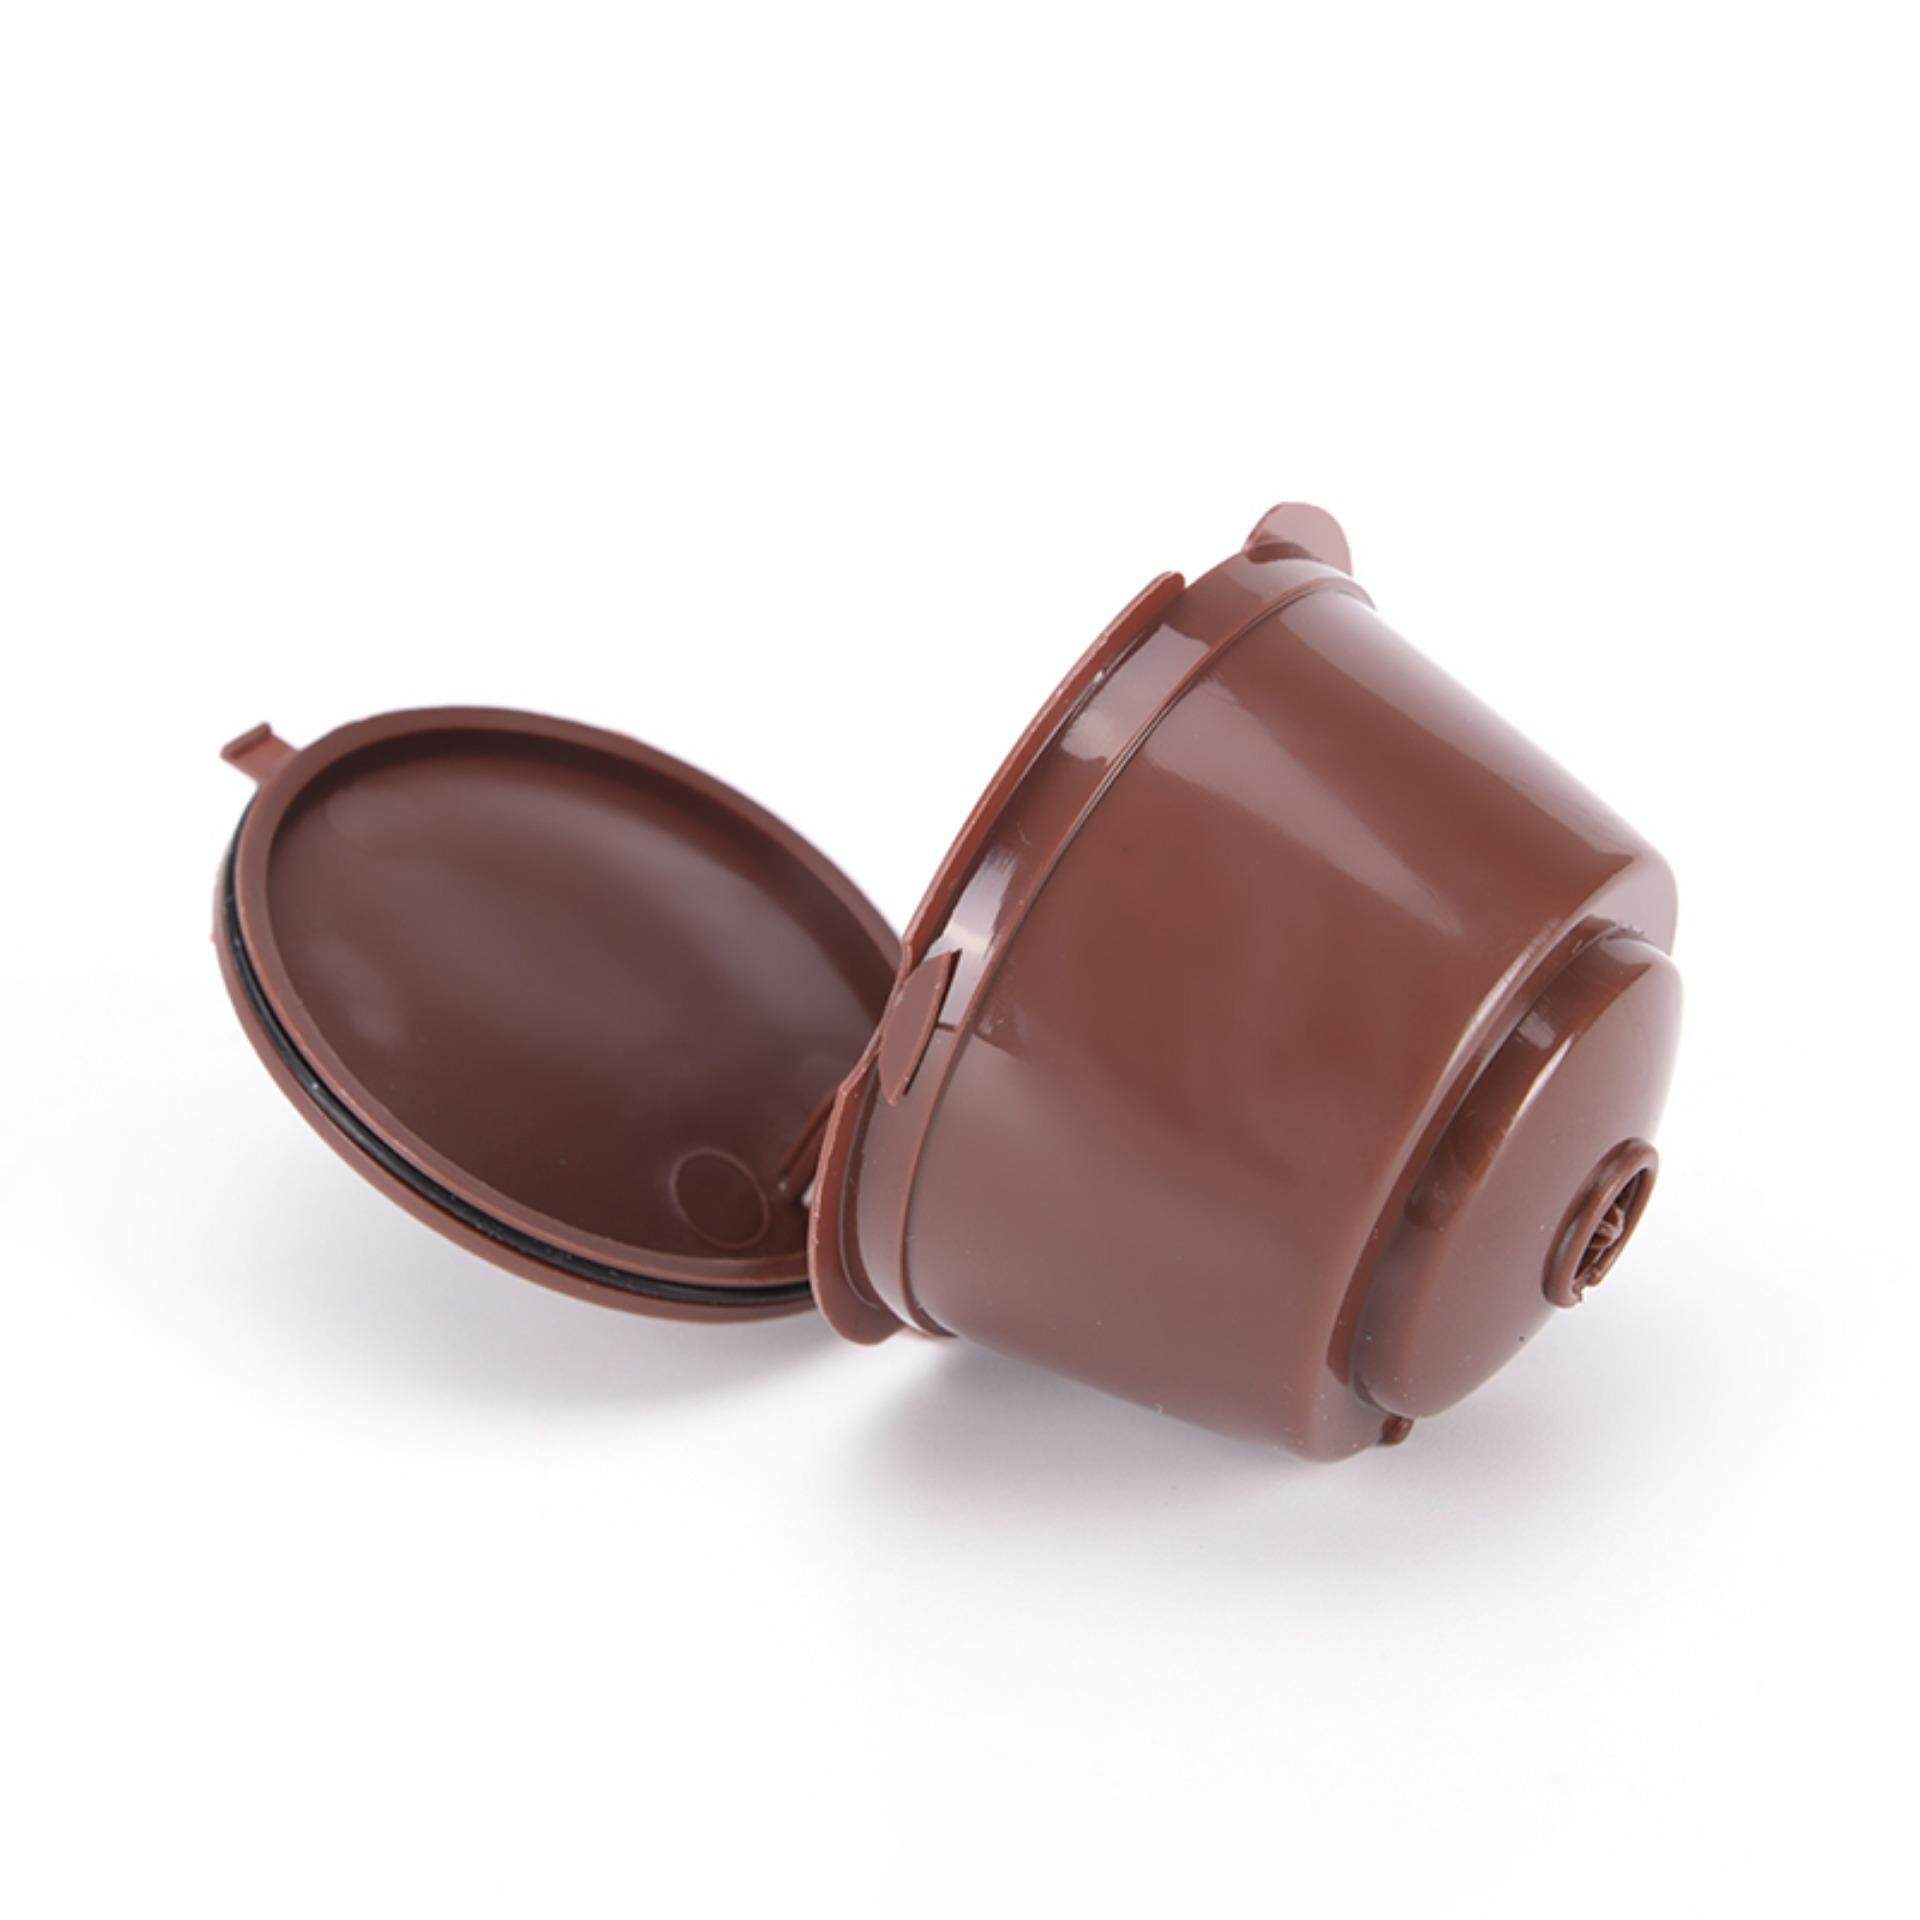 Good Reusable Capsule Pod Coffee Filter Cup Holder for Nescafe Gusto Machine Brown .